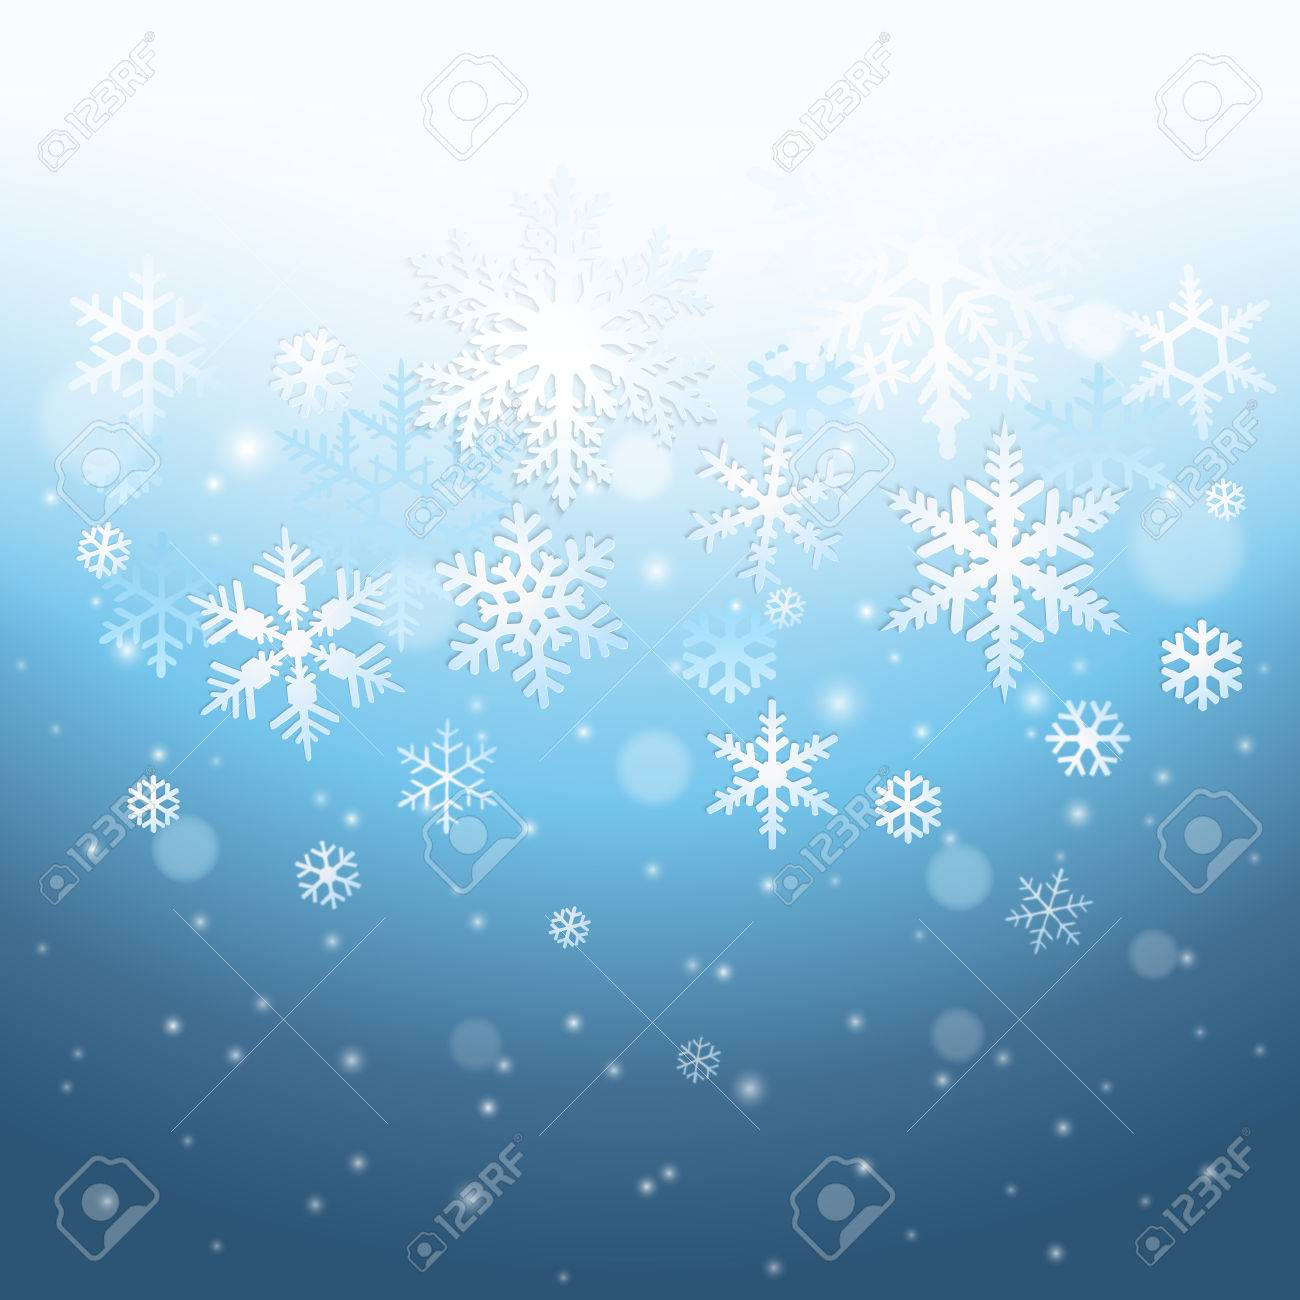 Abstract blue winter background with falling snowflakes - 48719139